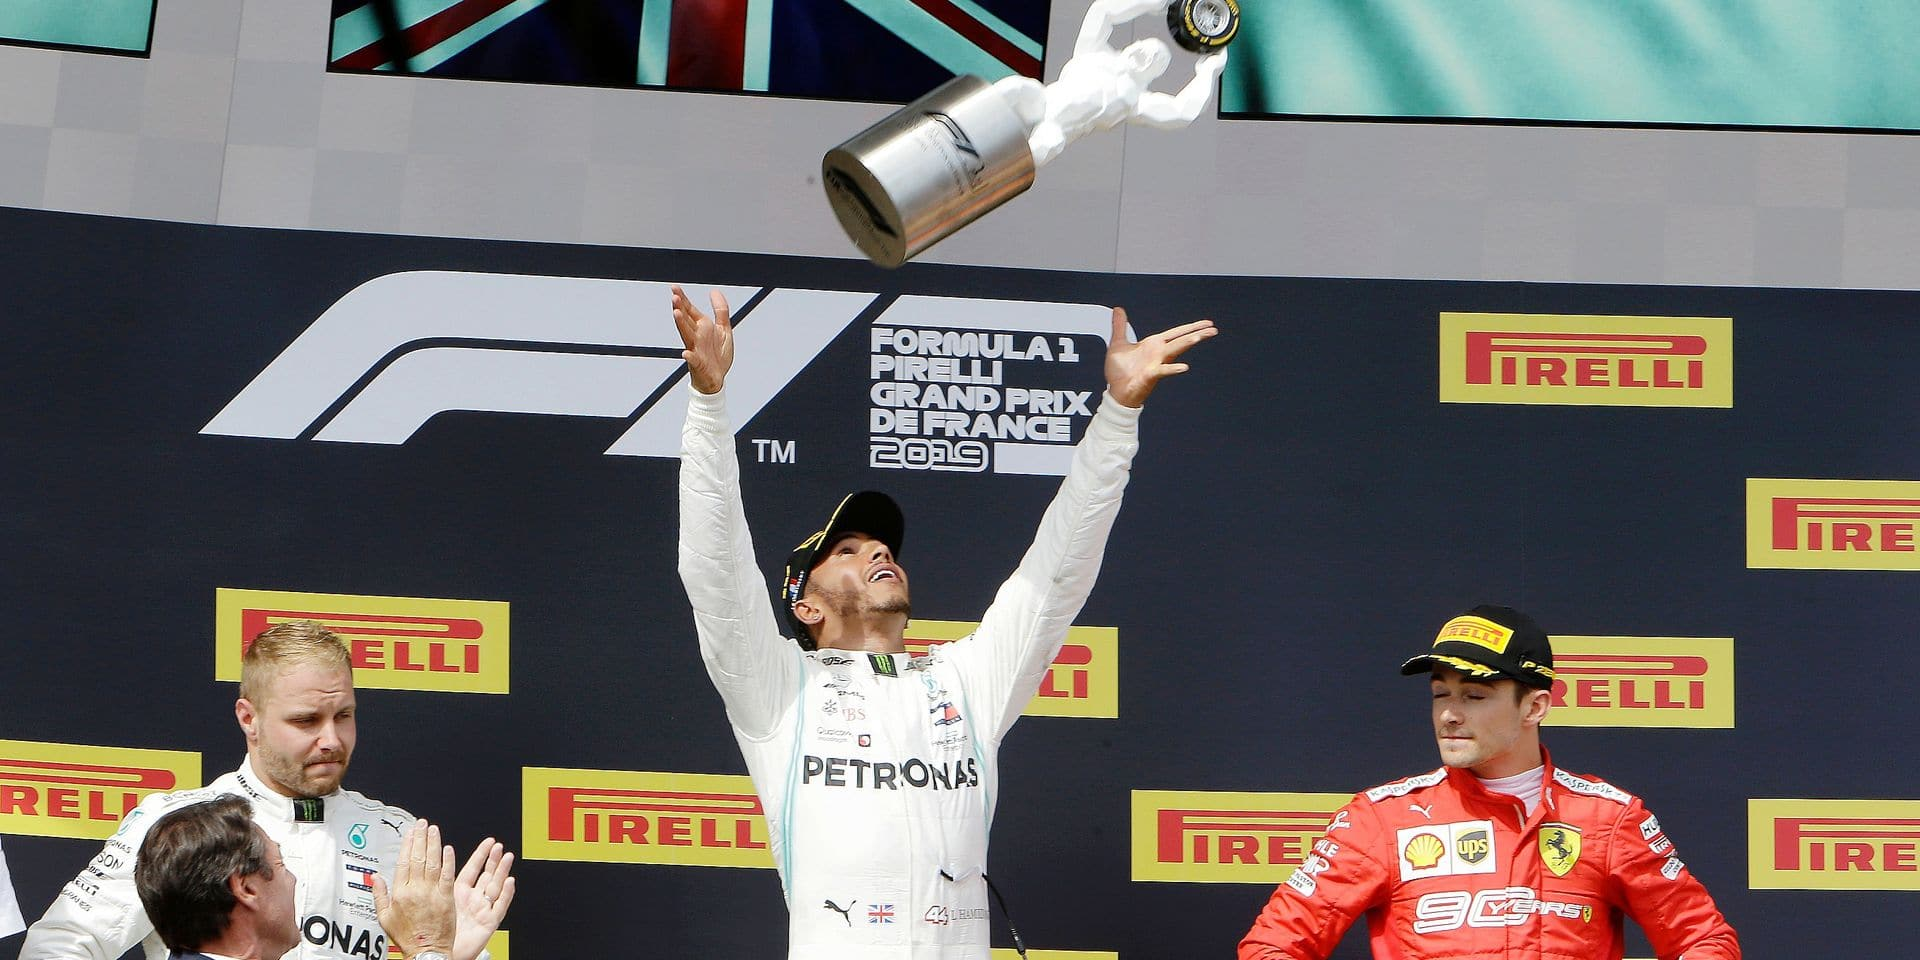 Mercedes driver Lewis Hamilton, center, of Britain, celebrates on the podium after winning the French Formula One Grand Prix with second placed Mercedes driver Valtteri Bottas, left, of Finland and third placed Ferrari driver Charles Leclerc of Monaco, at the Paul Ricard racetrack, in Le Castellet, southern France, Sunday, June 23, 2019. (AP Photo/Claude Paris)